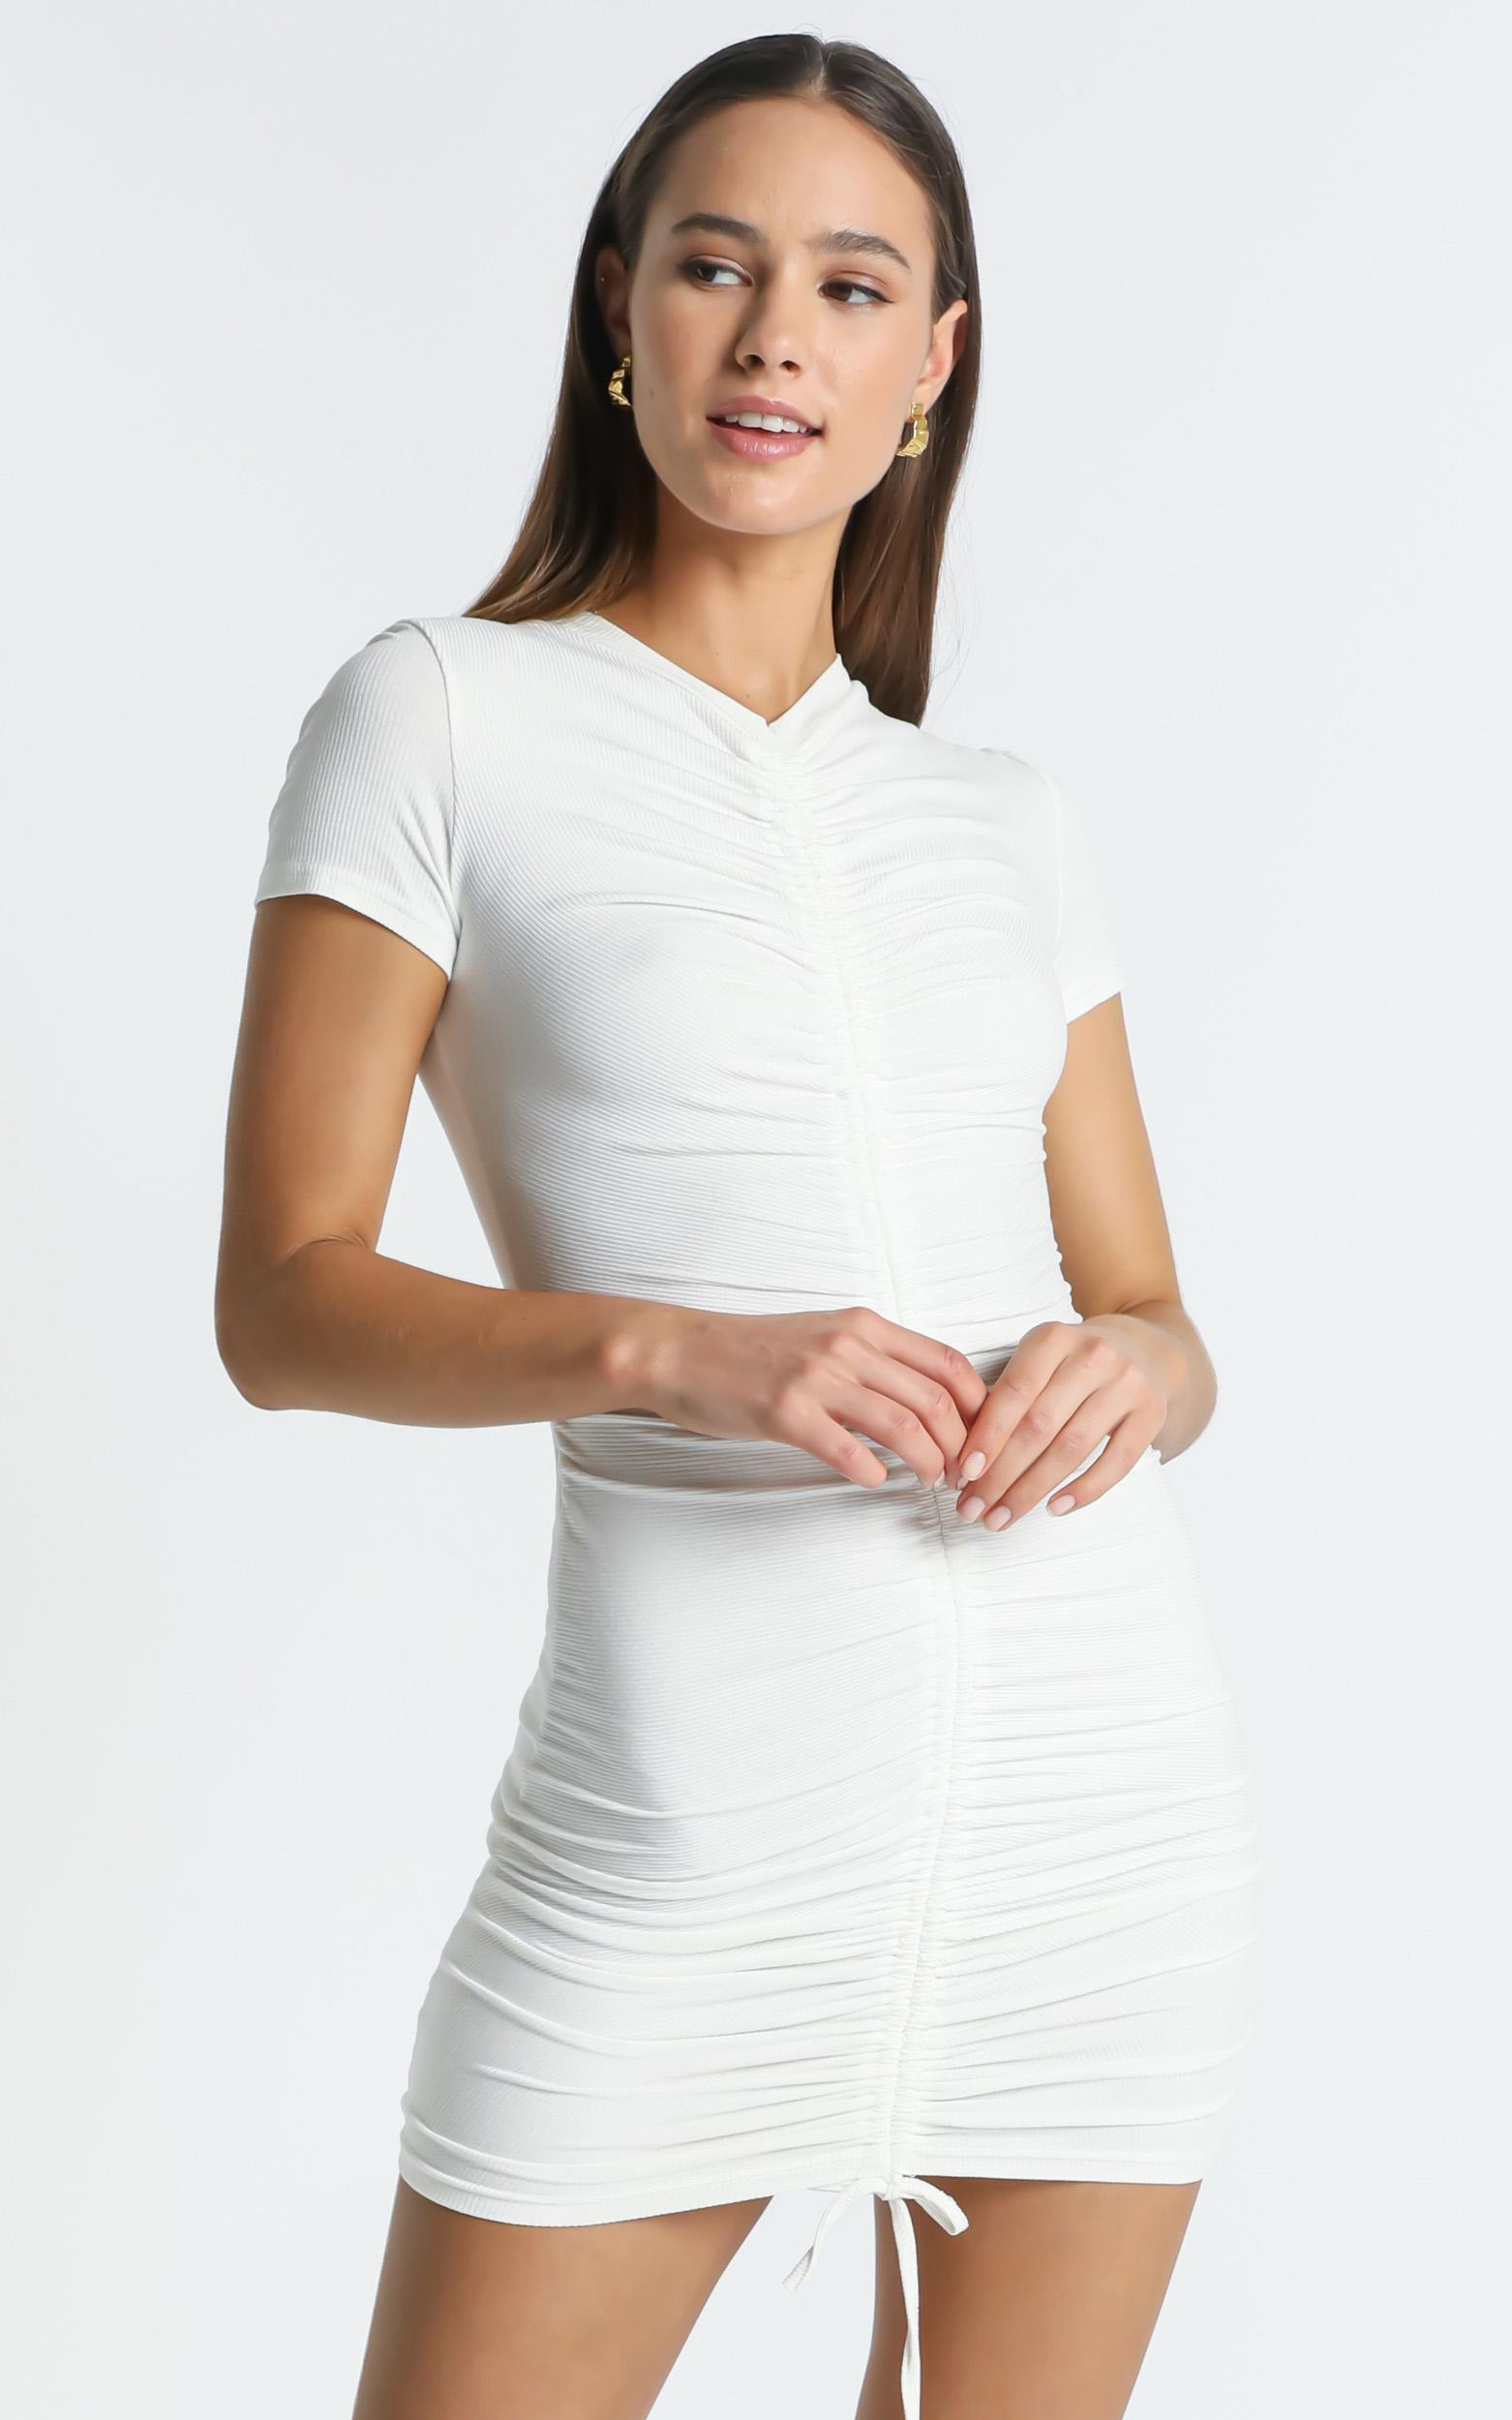 Kayne Dress in White - 6 (XS), White, hi-res image number null